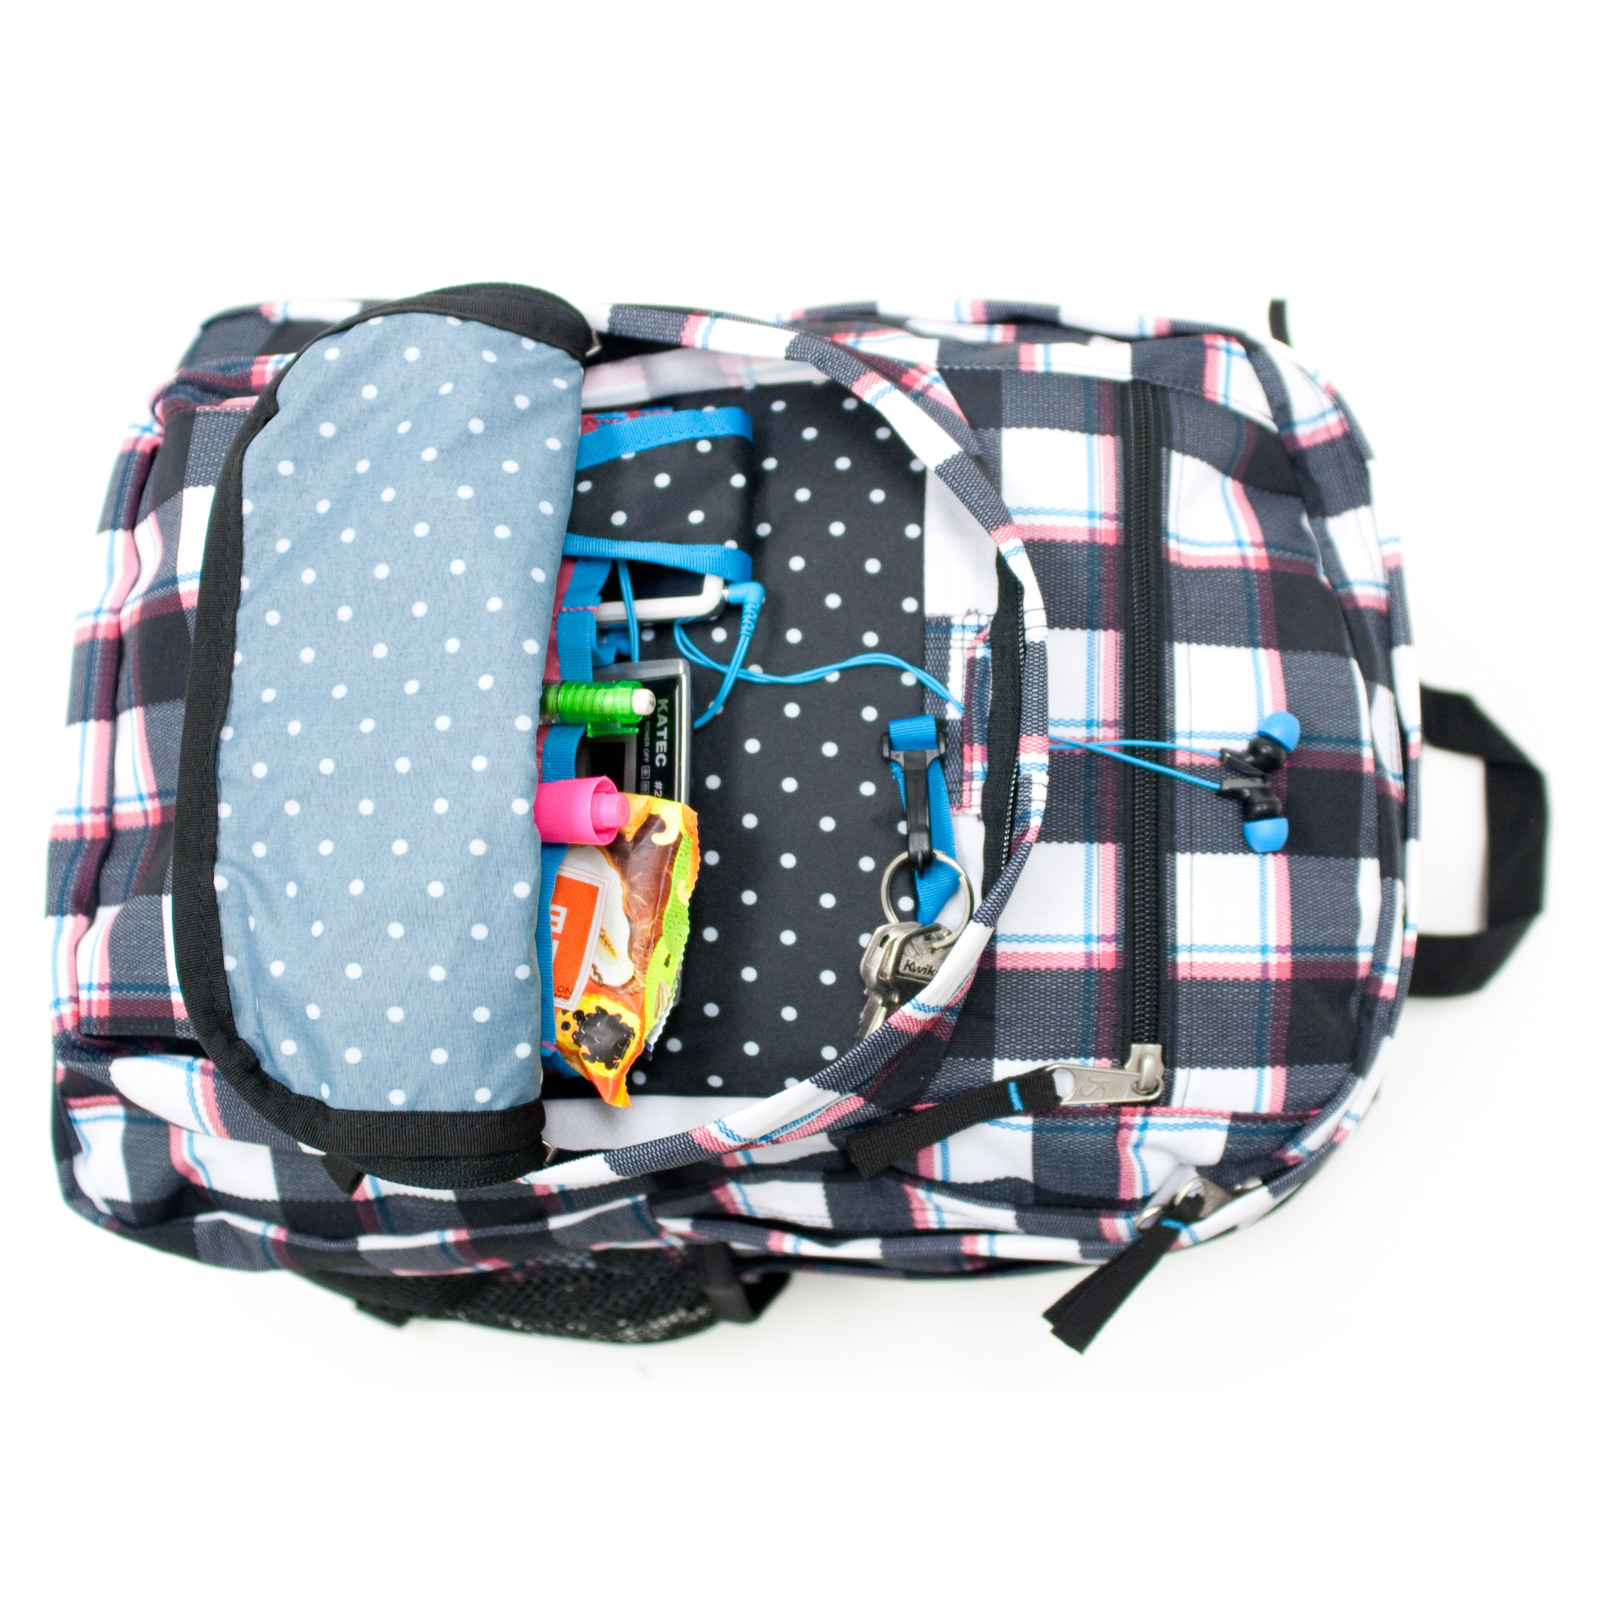 Jansport Big Student Backpack Clearance JyI5HkXL